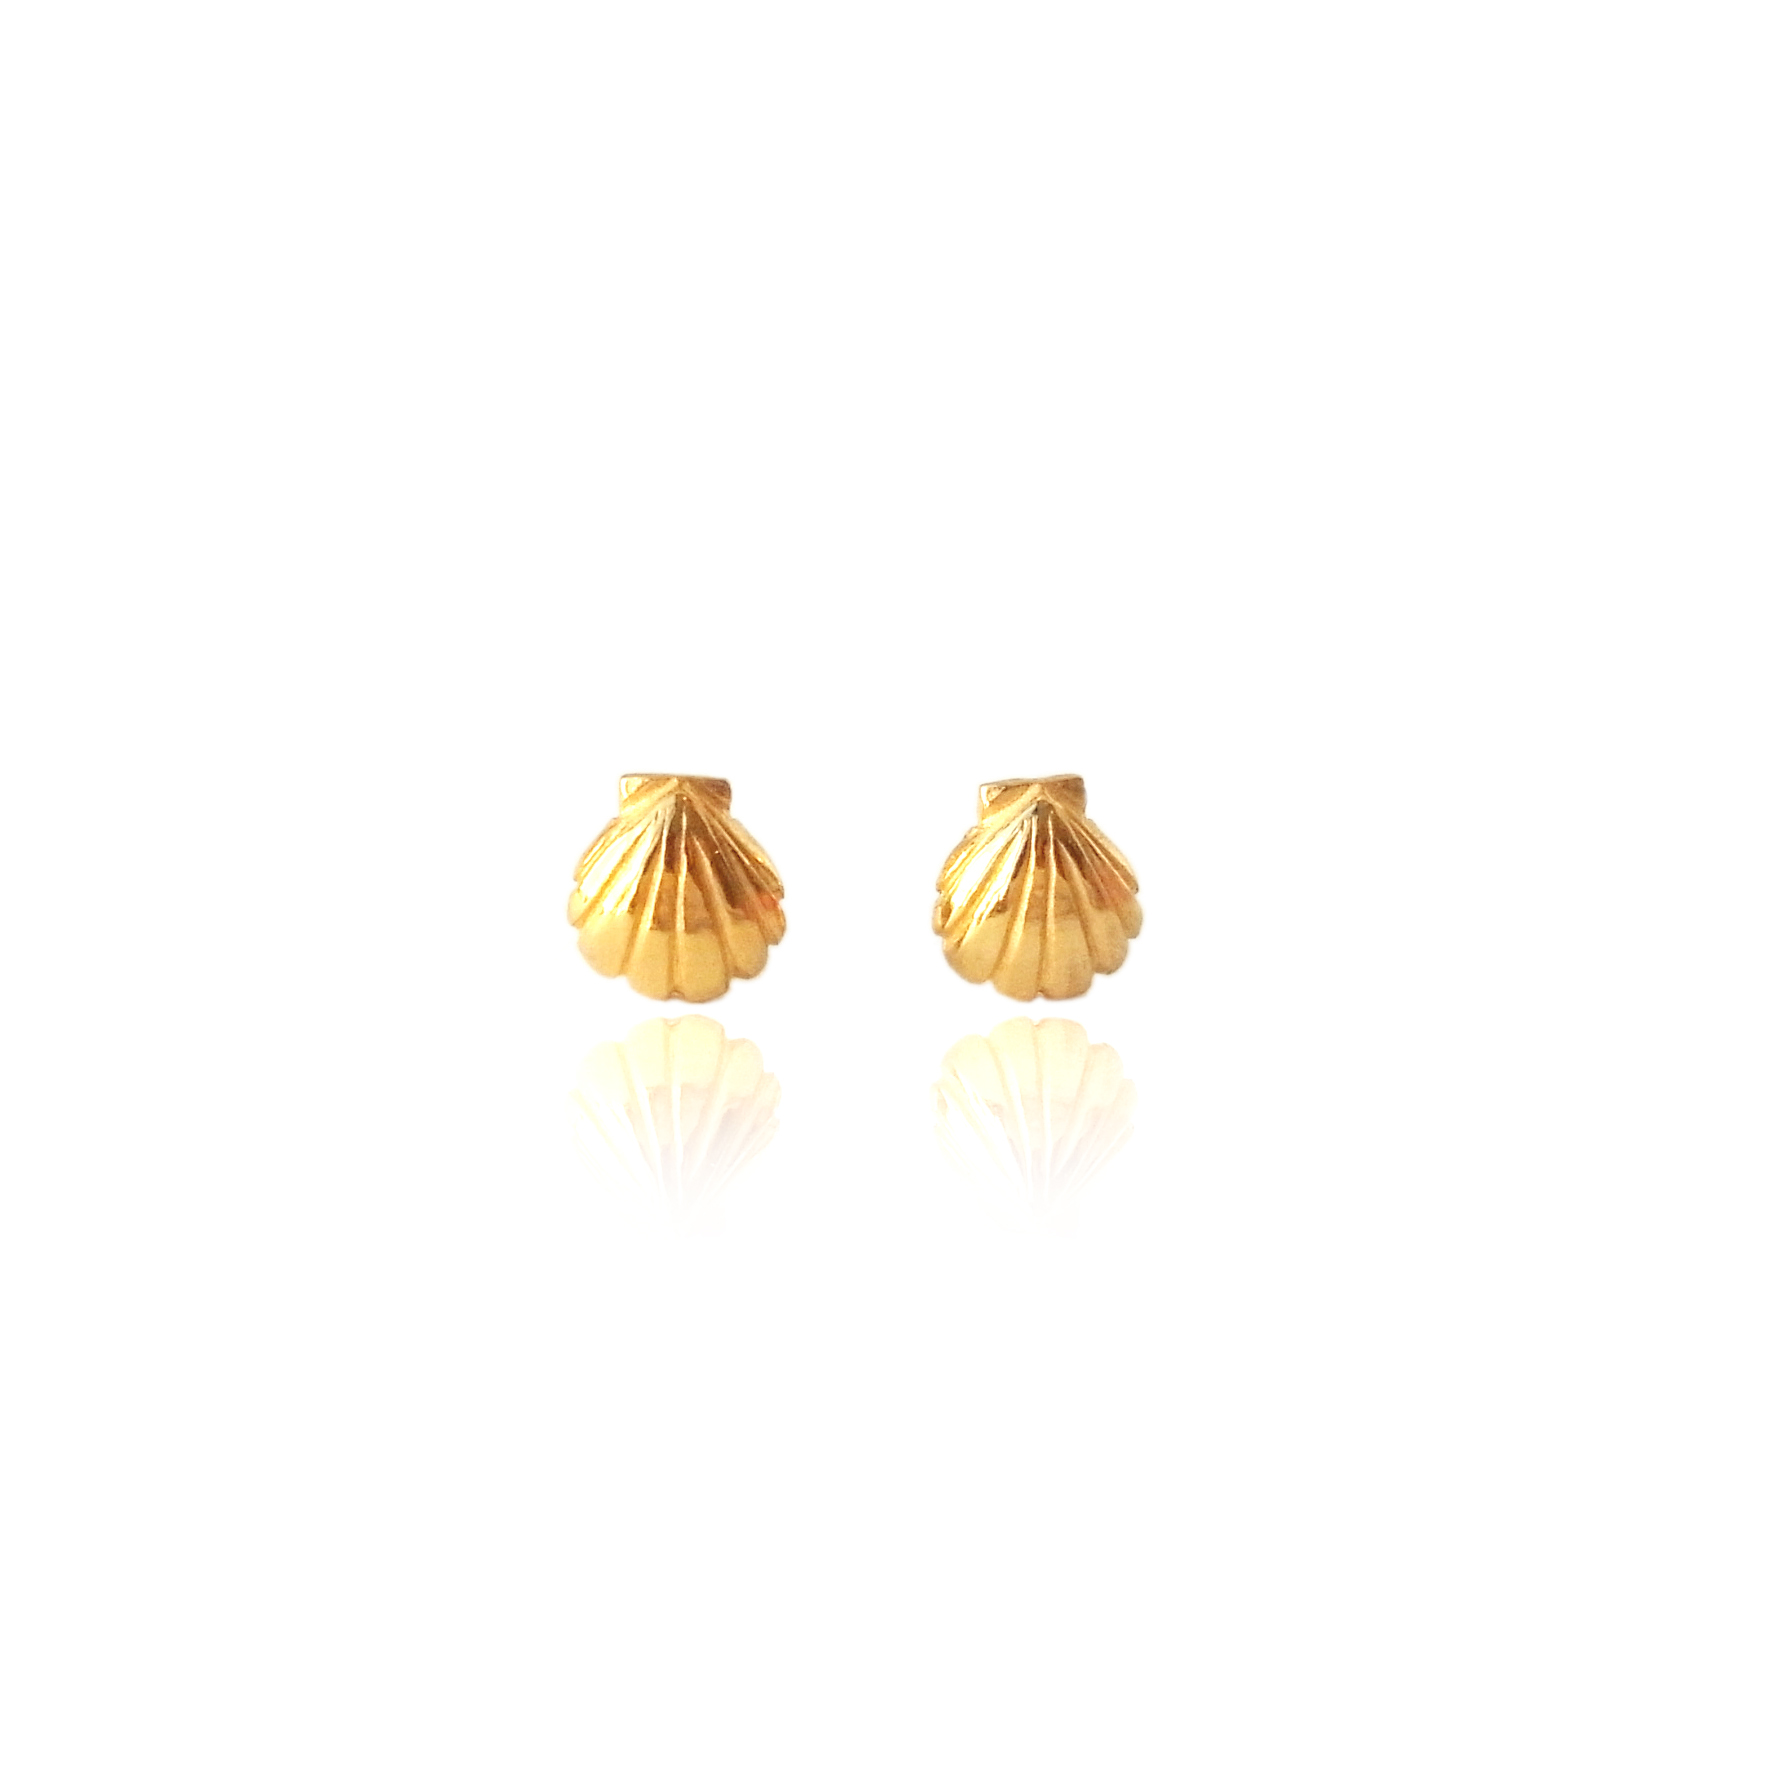 Momocreatura shell stud earrings gold.jpg